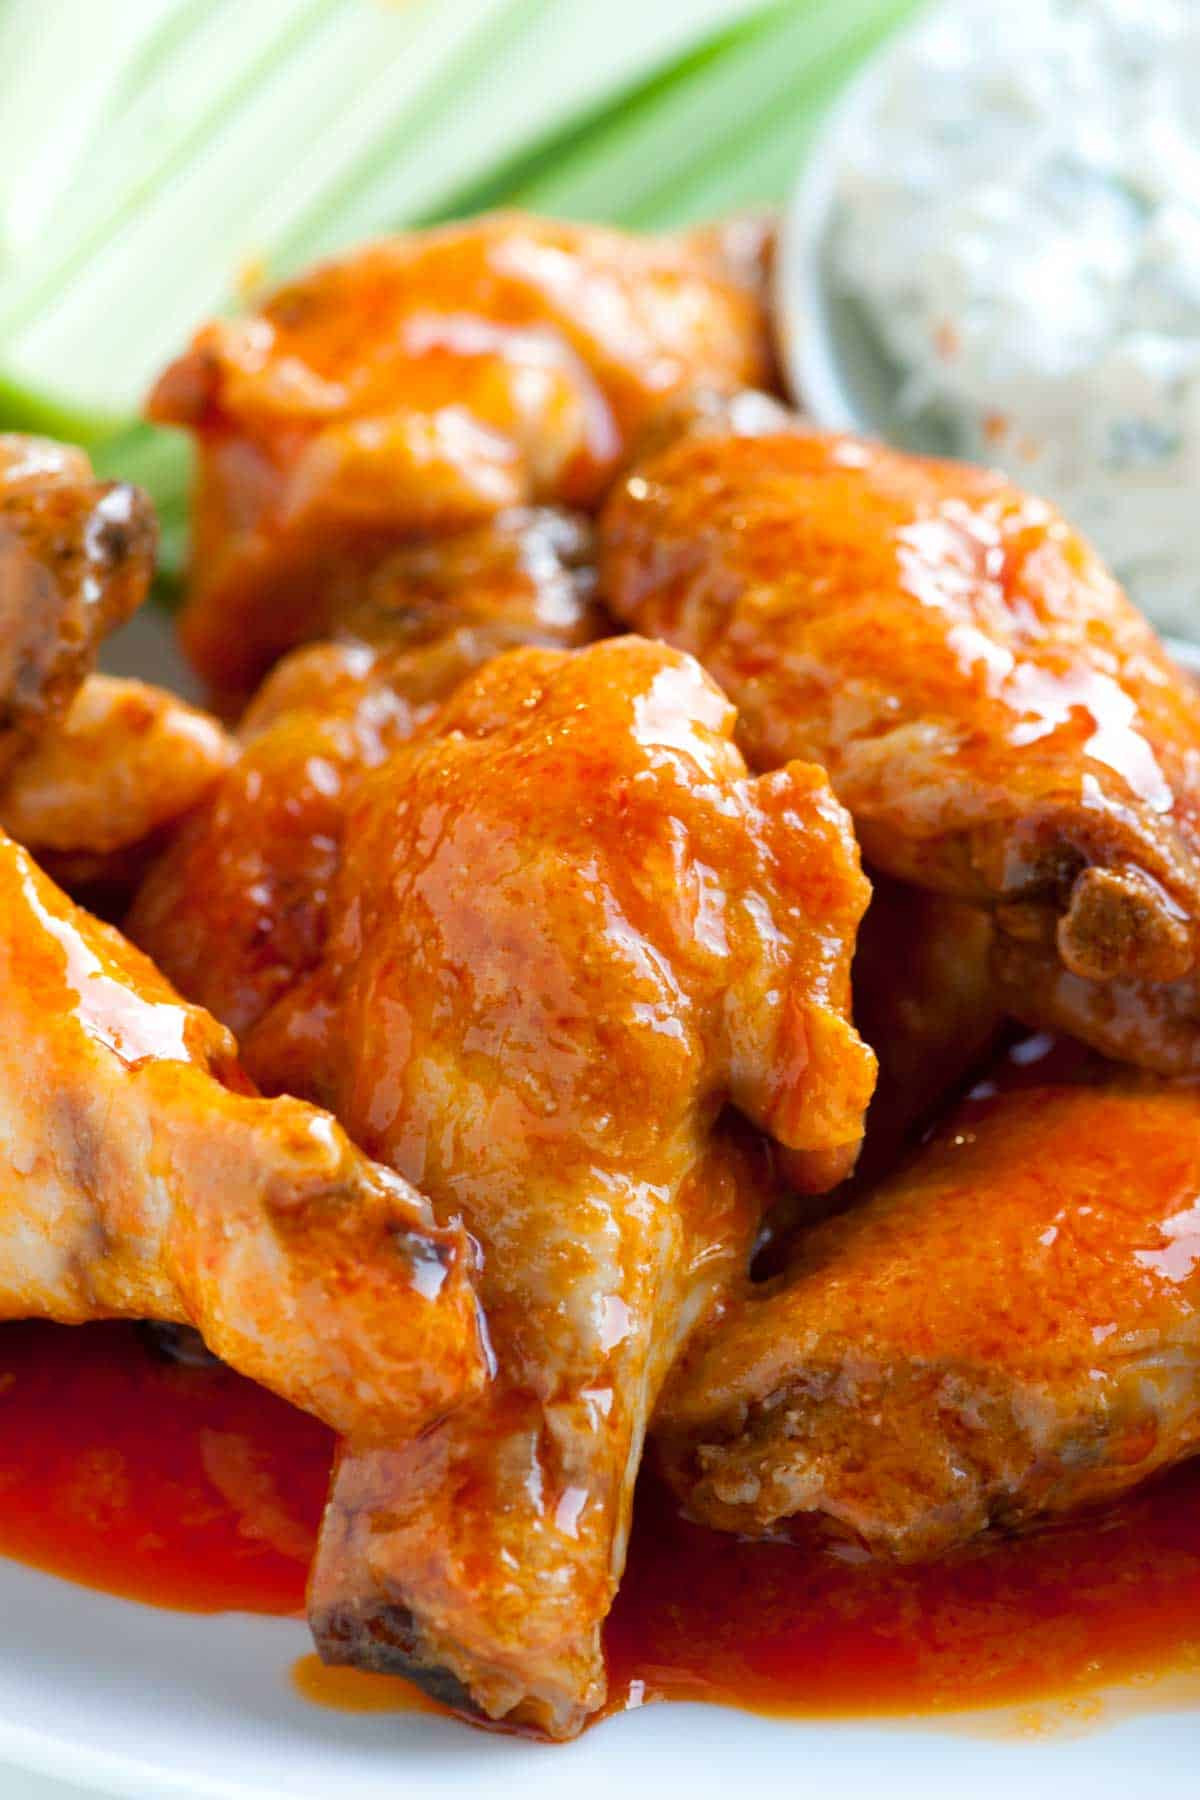 Oven Baked Chicken Wings Recipe  How to Make Crispy Baked Chicken Hot Wings